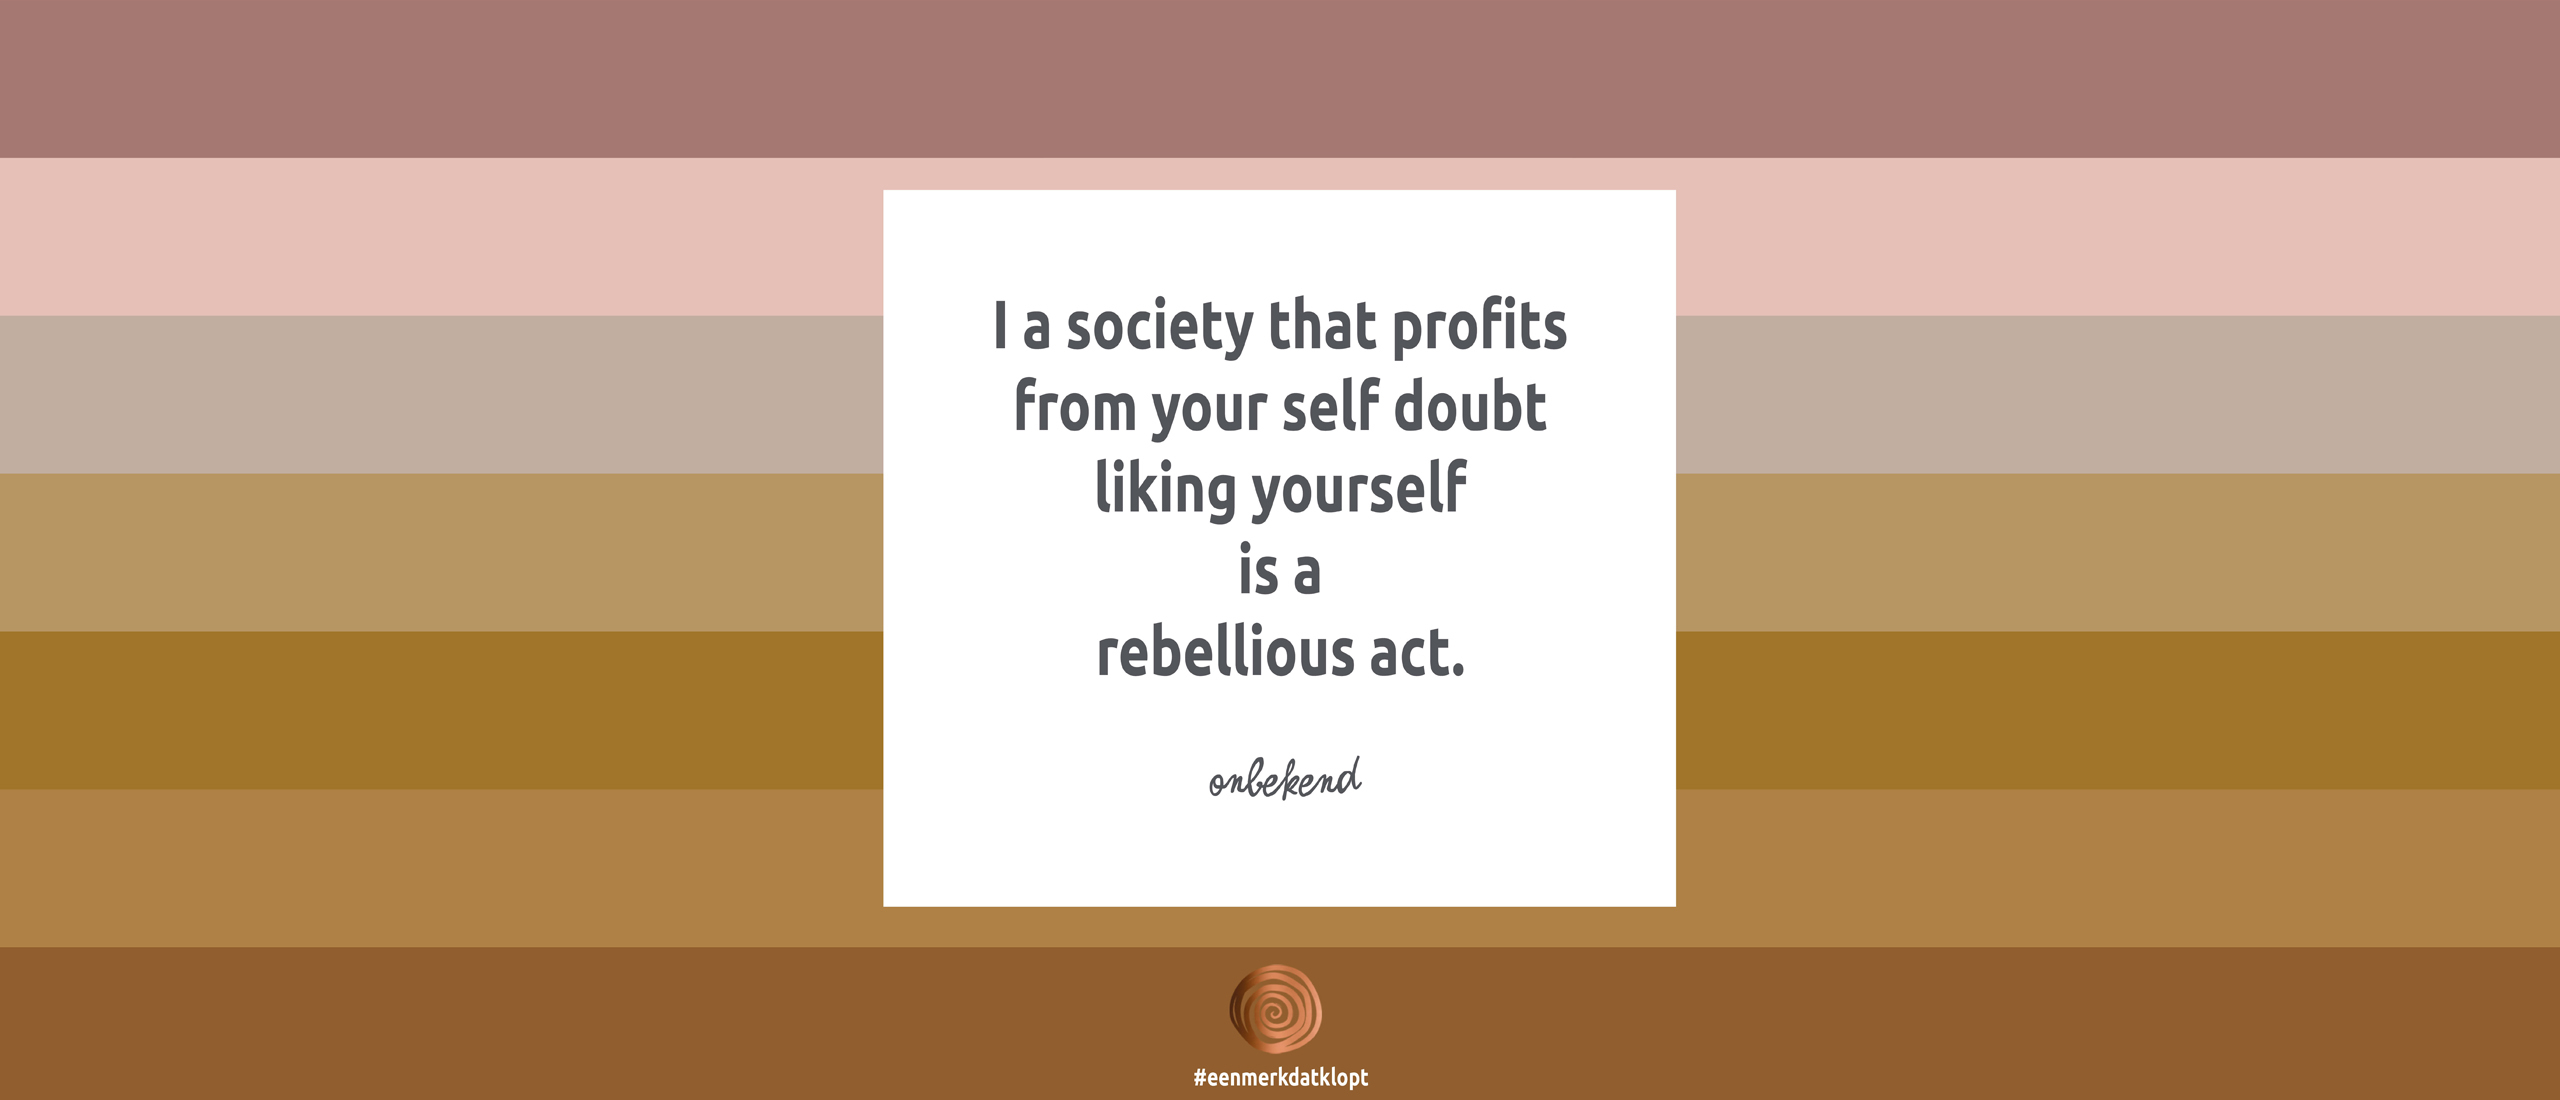 Liking yourself is a rebellious act